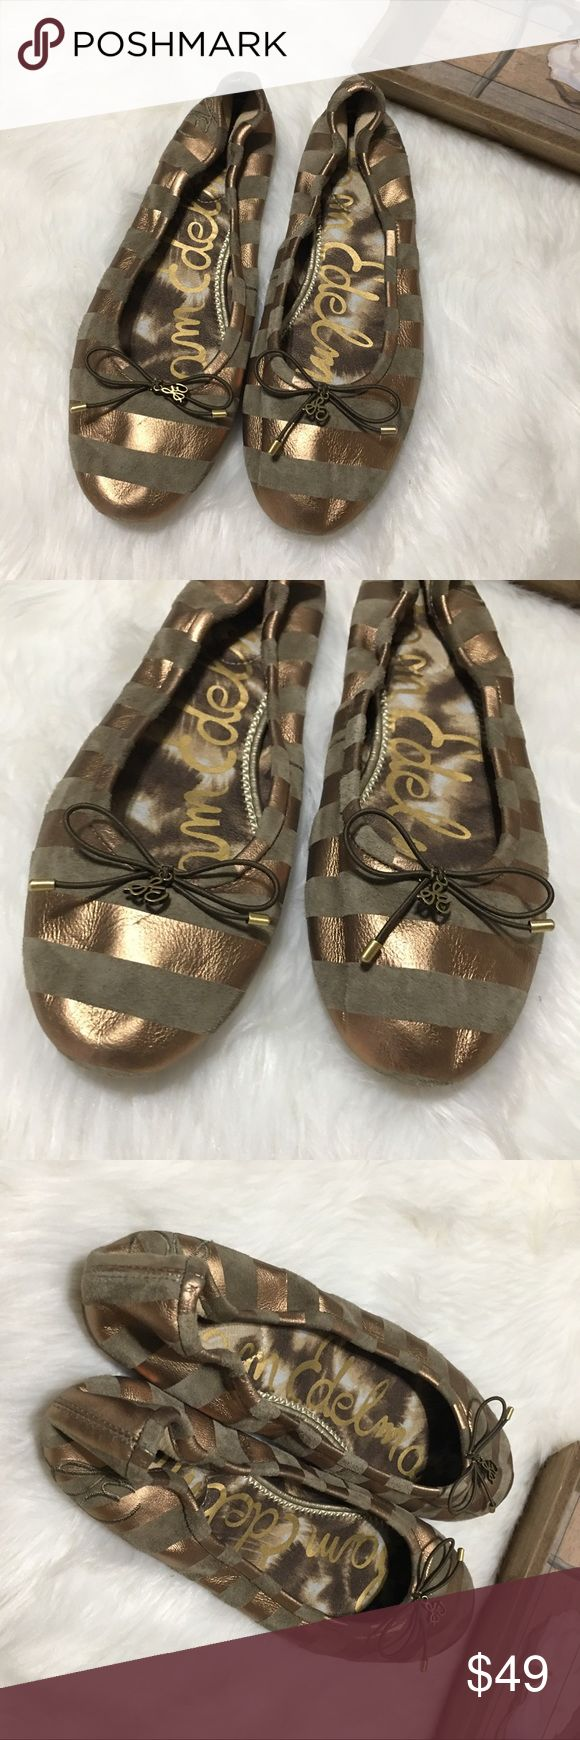 Sam Edelman Bronze Striped Ballet Flats Sam Edelman Bronze striped ballet flats in excellent brand new WITHOUT tags condition. Super chic and stylish! Perfect for all occasions! Sam Edelman Shoes Flats & Loafers